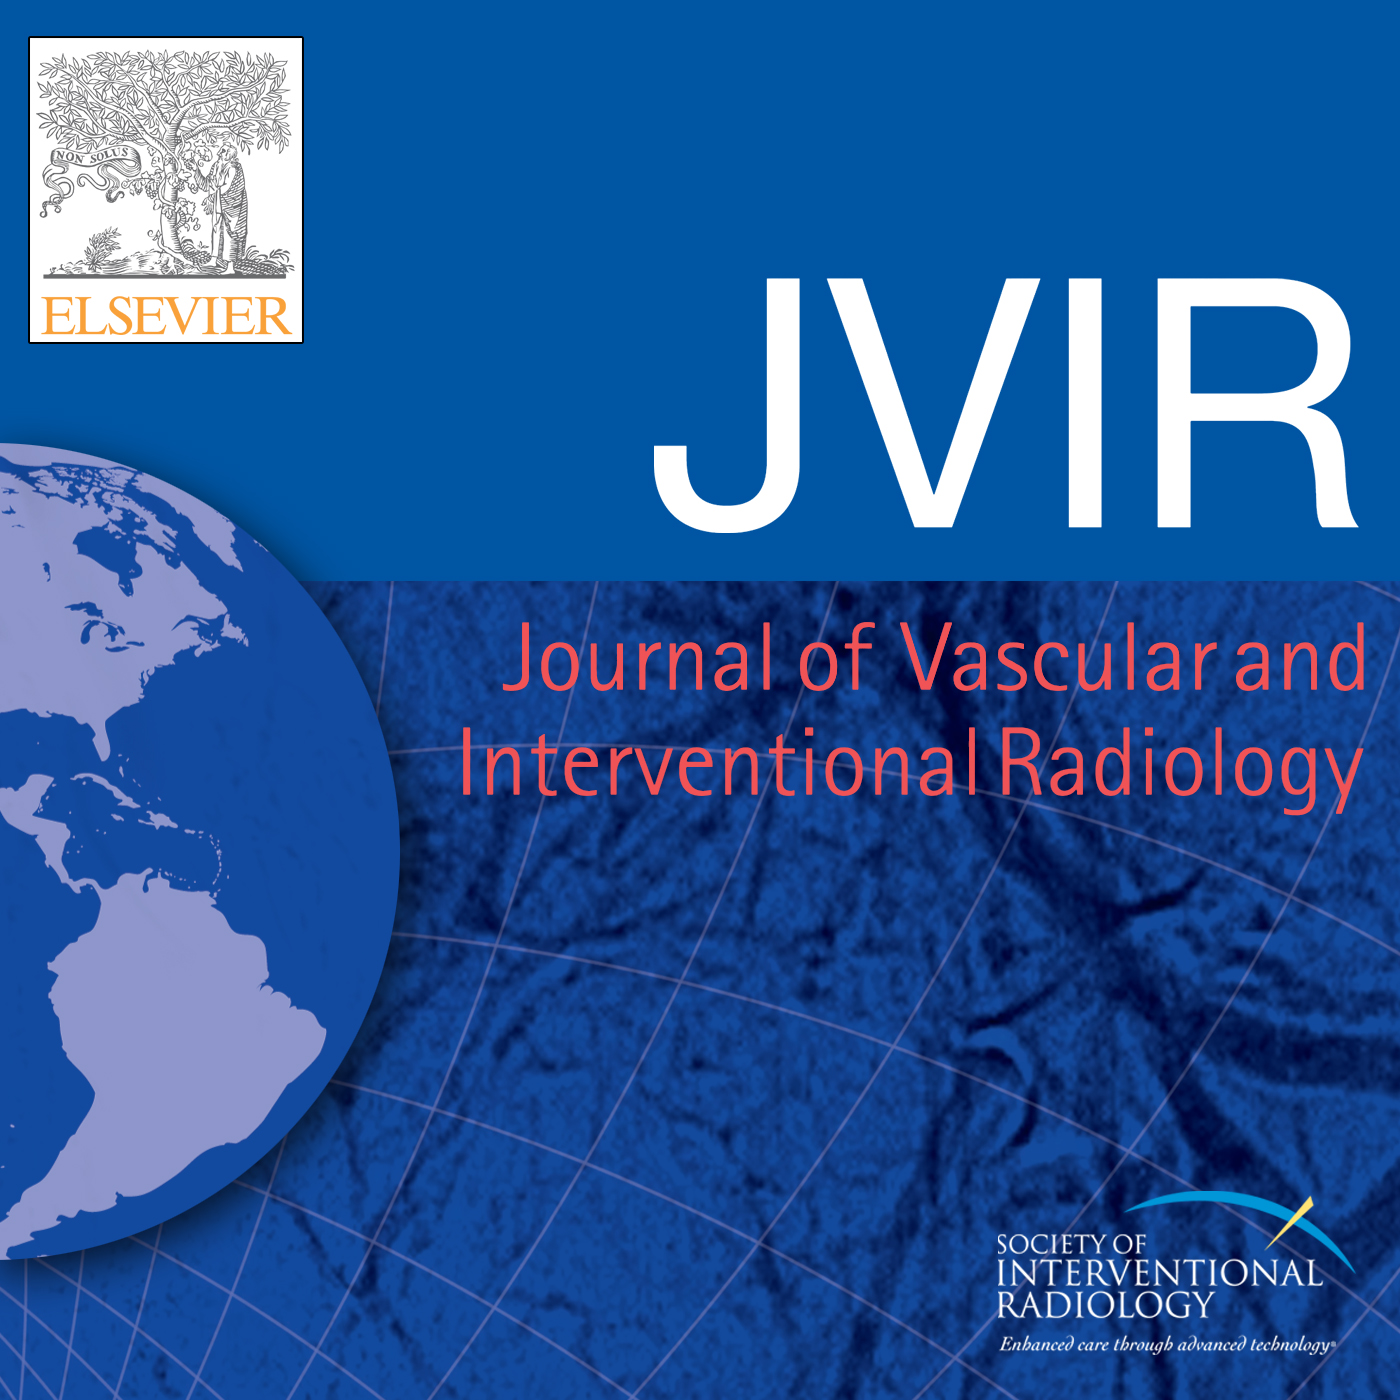 JVIR: Journal of Vascular and Interventional Radiology